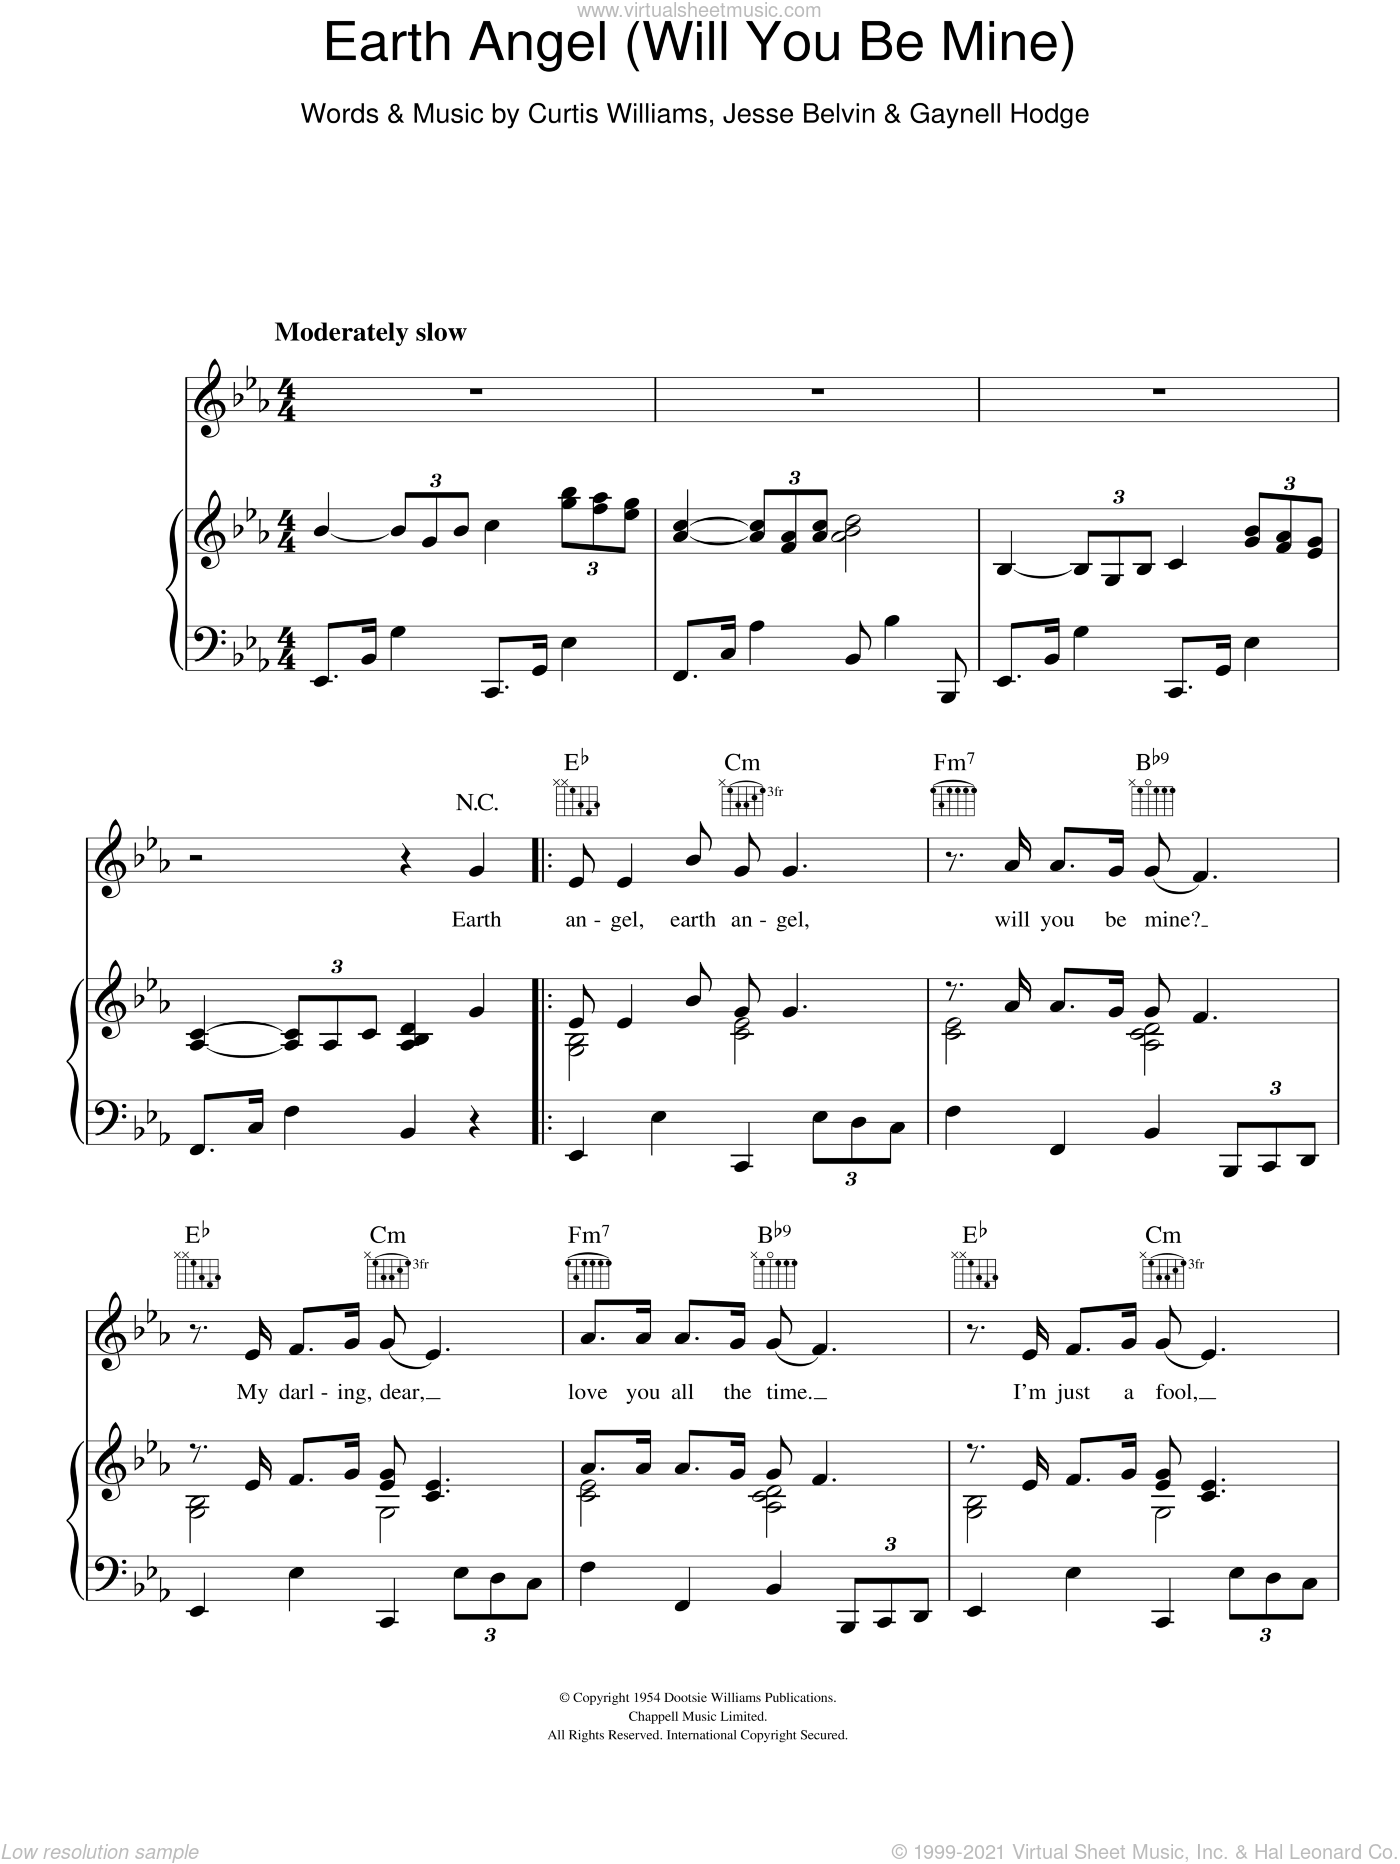 Earth Angel sheet music for voice, piano or guitar by The Platters, Curtis Williams and Jesse Belvin, intermediate. Score Image Preview.